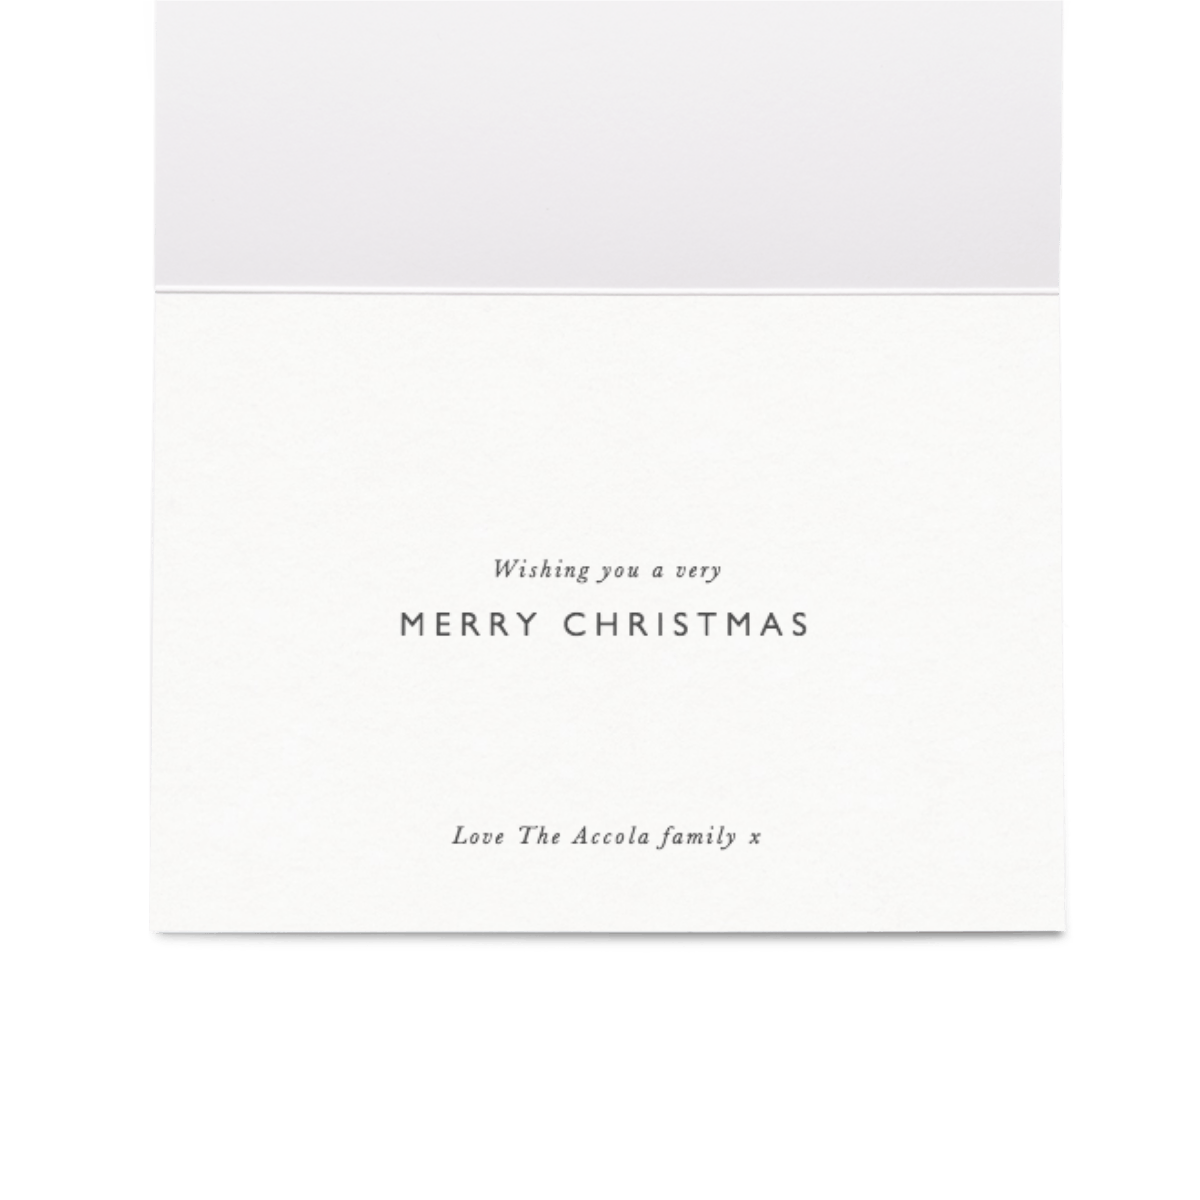 Https%3a%2f%2fwww.papier.com%2fproduct image%2f89368%2f20%2fmerry christmas 22422 inside 1569591441.png?ixlib=rb 1.1